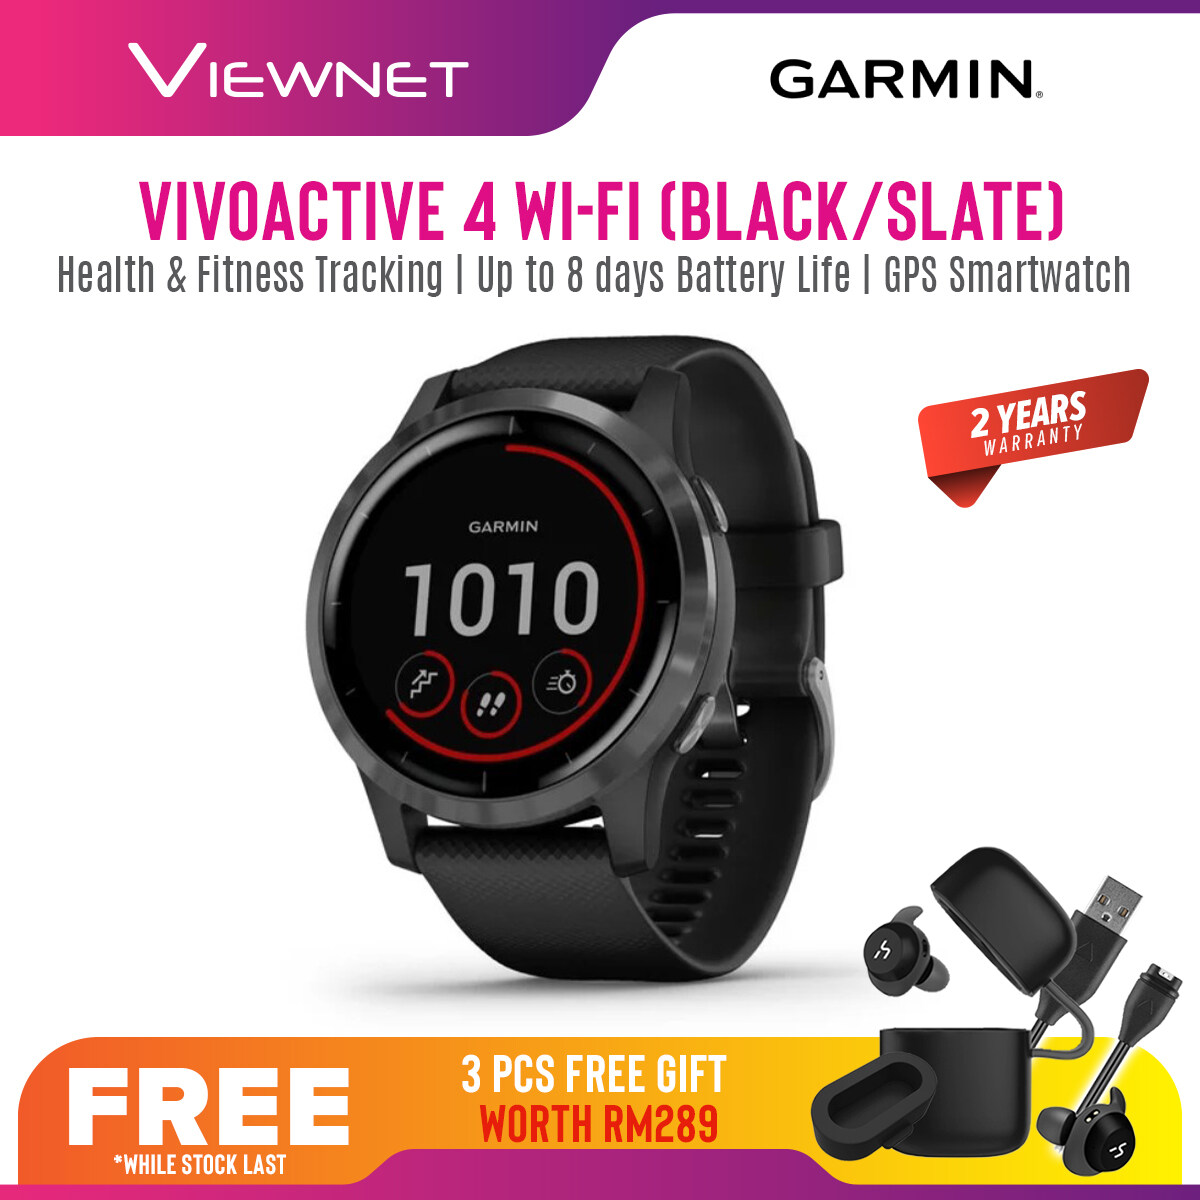 Garmin Vivoactive 4 GPS Smartwatch Fitness Tracker with Wrist Based Heart Rate Monitor